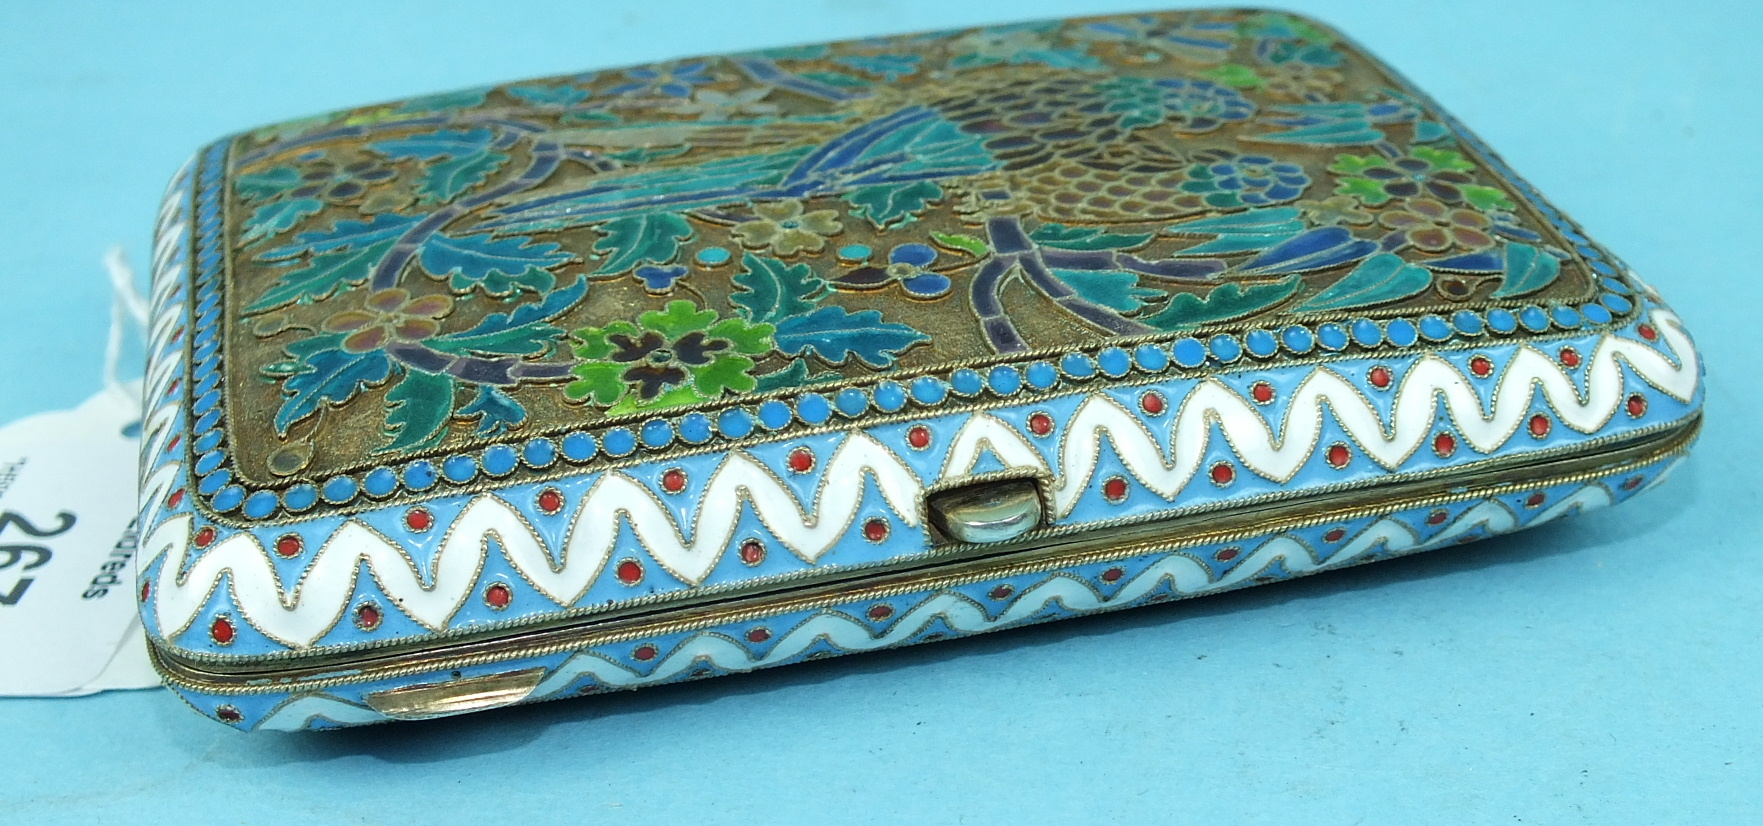 Lot 267 - A Russian silver gilt and plique-à-jour enamel cigarette case, each hinged side decorated with a